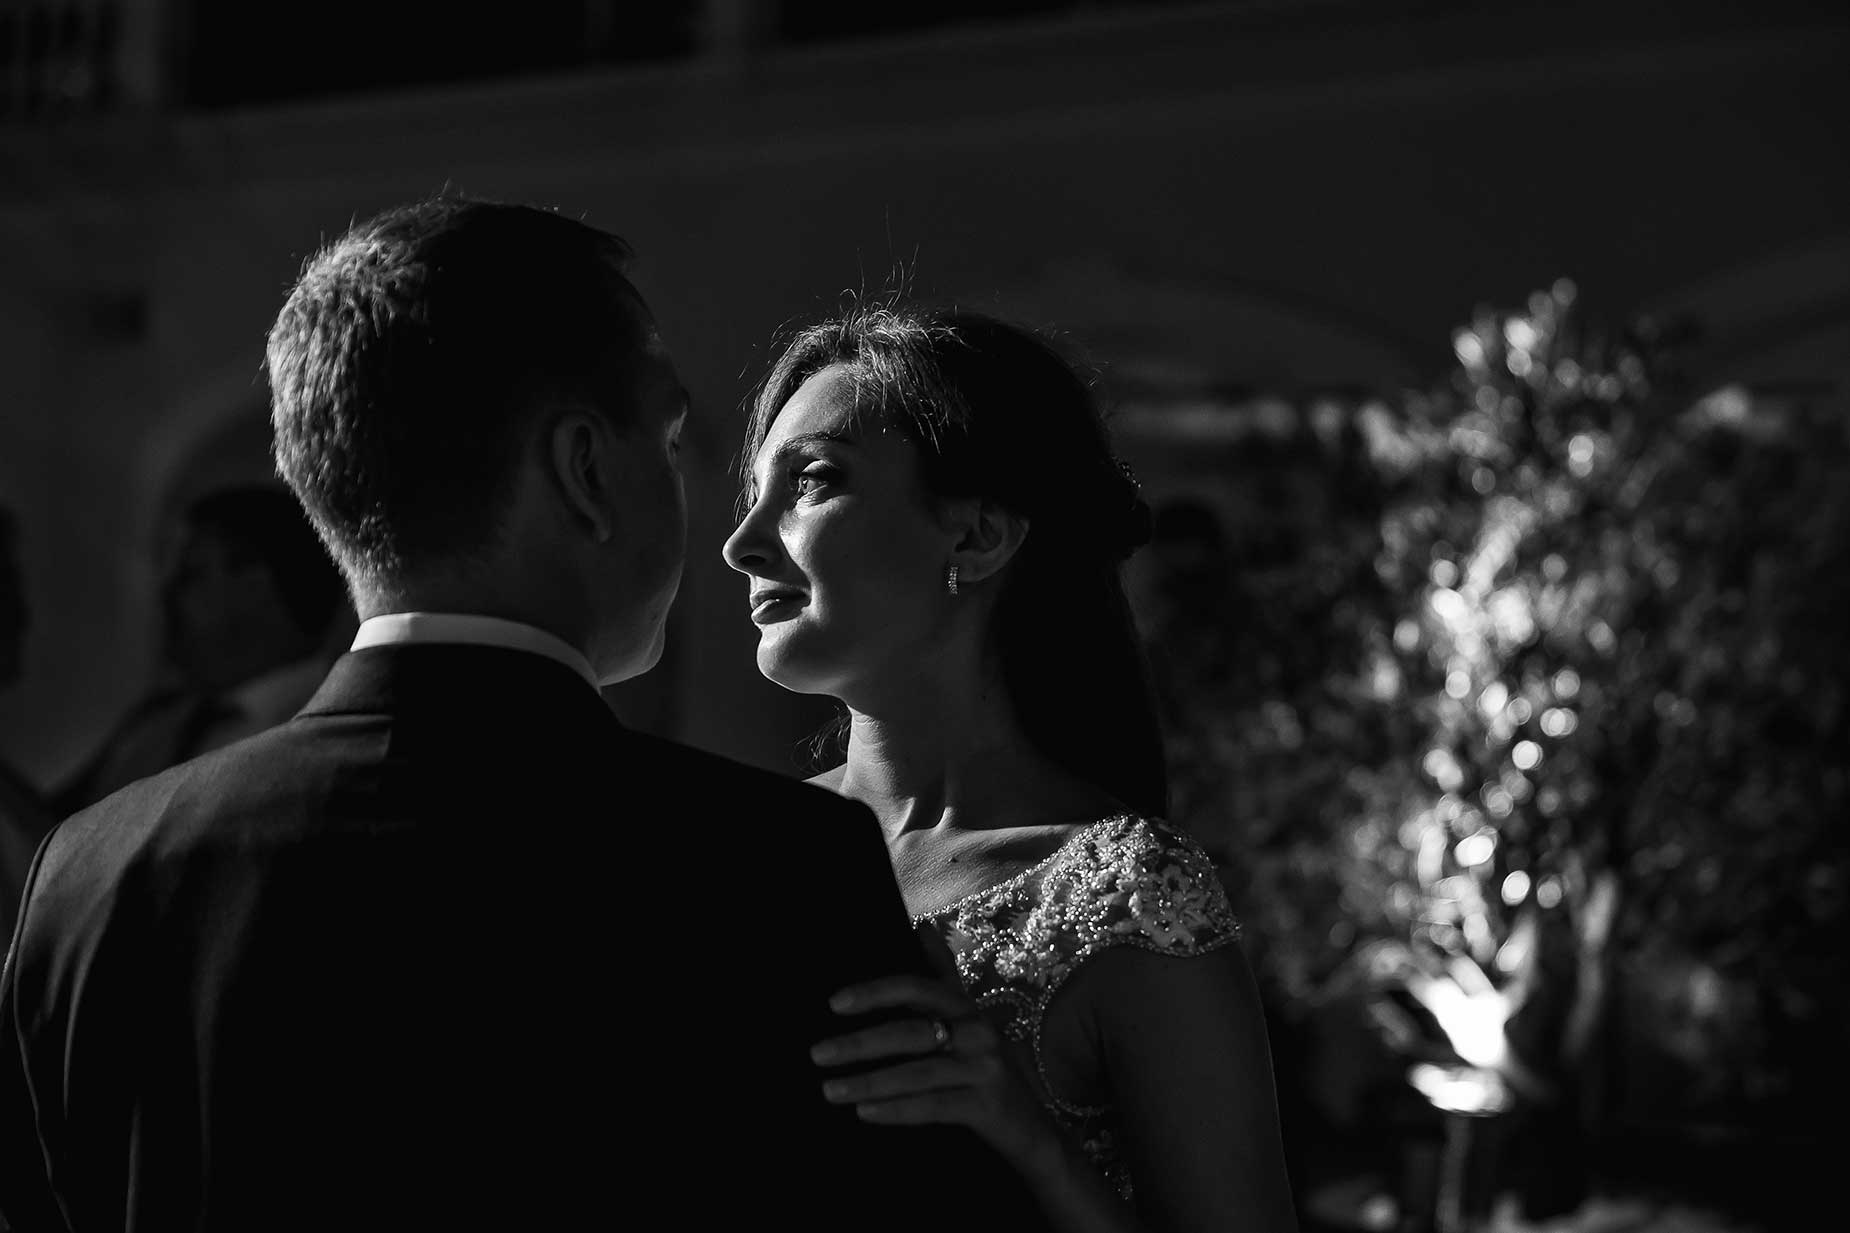 Documentary wedding photographer saint tropez